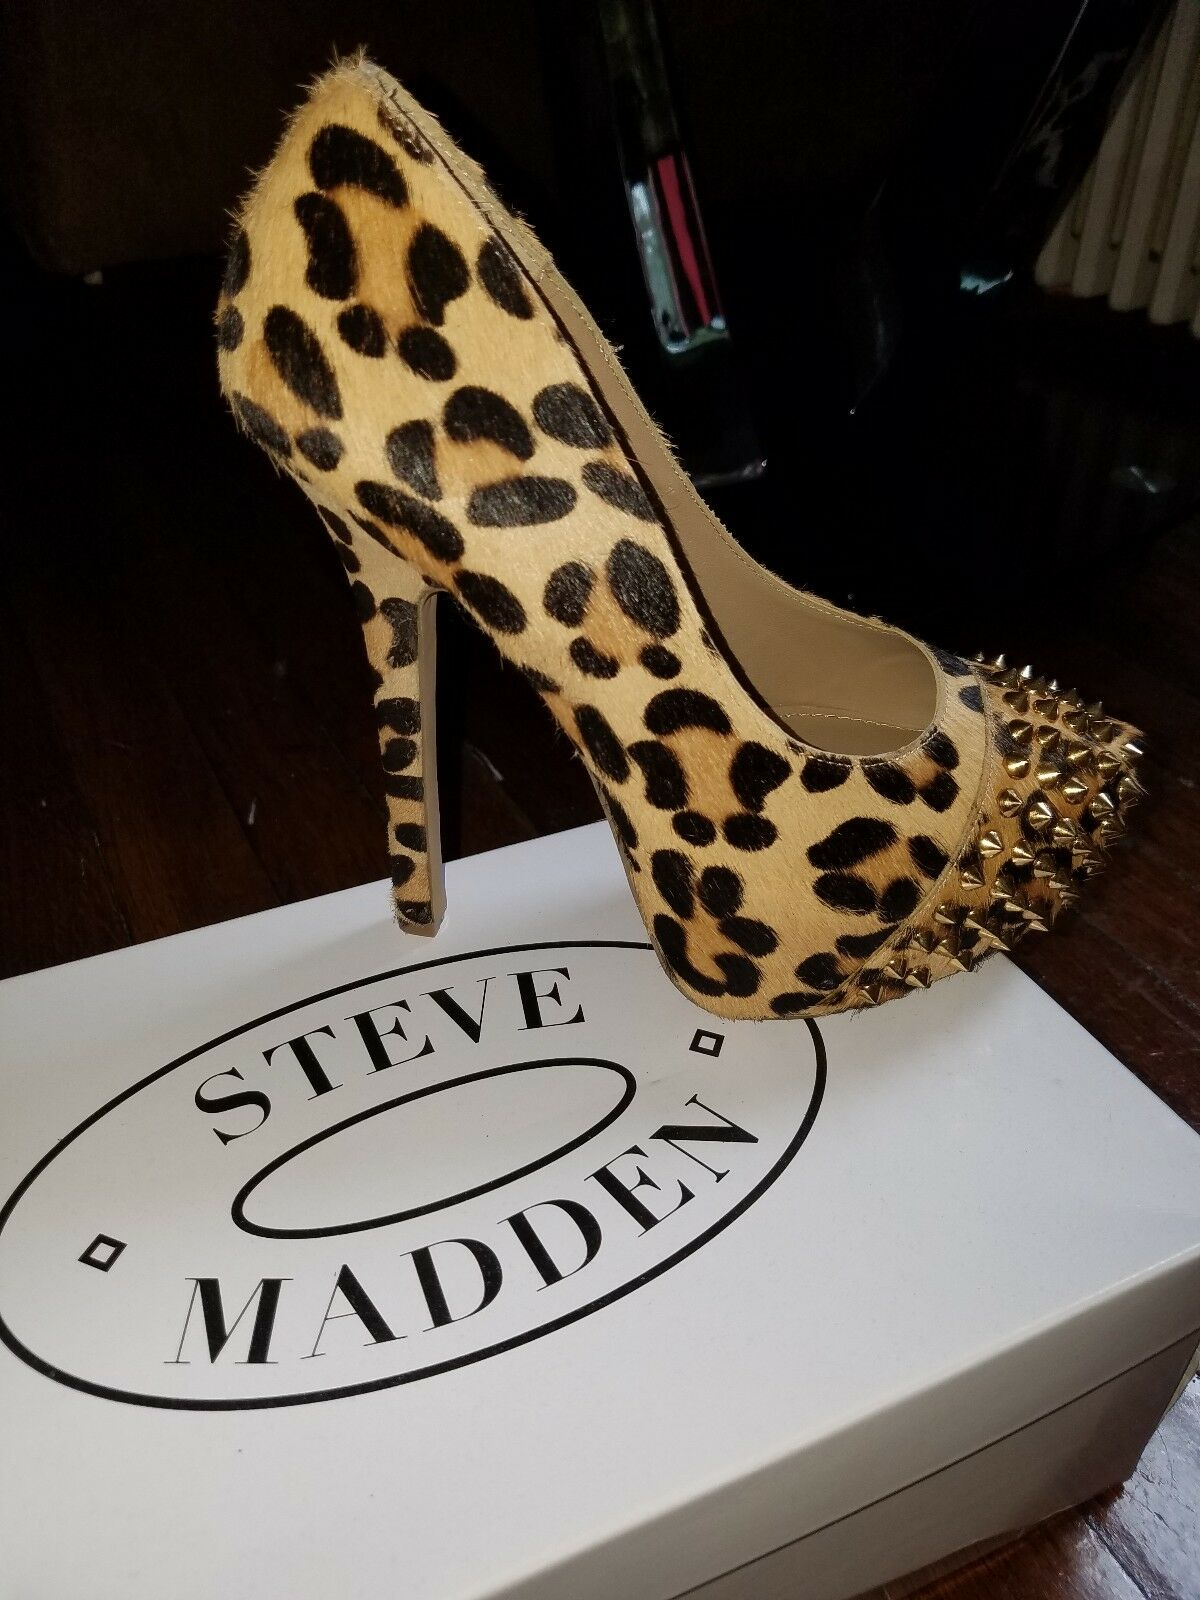 varie dimensioni donna steve madden real fur printed printed printed studd cow hair leahter heels Dimensione7m  senza esitazione! acquista ora!